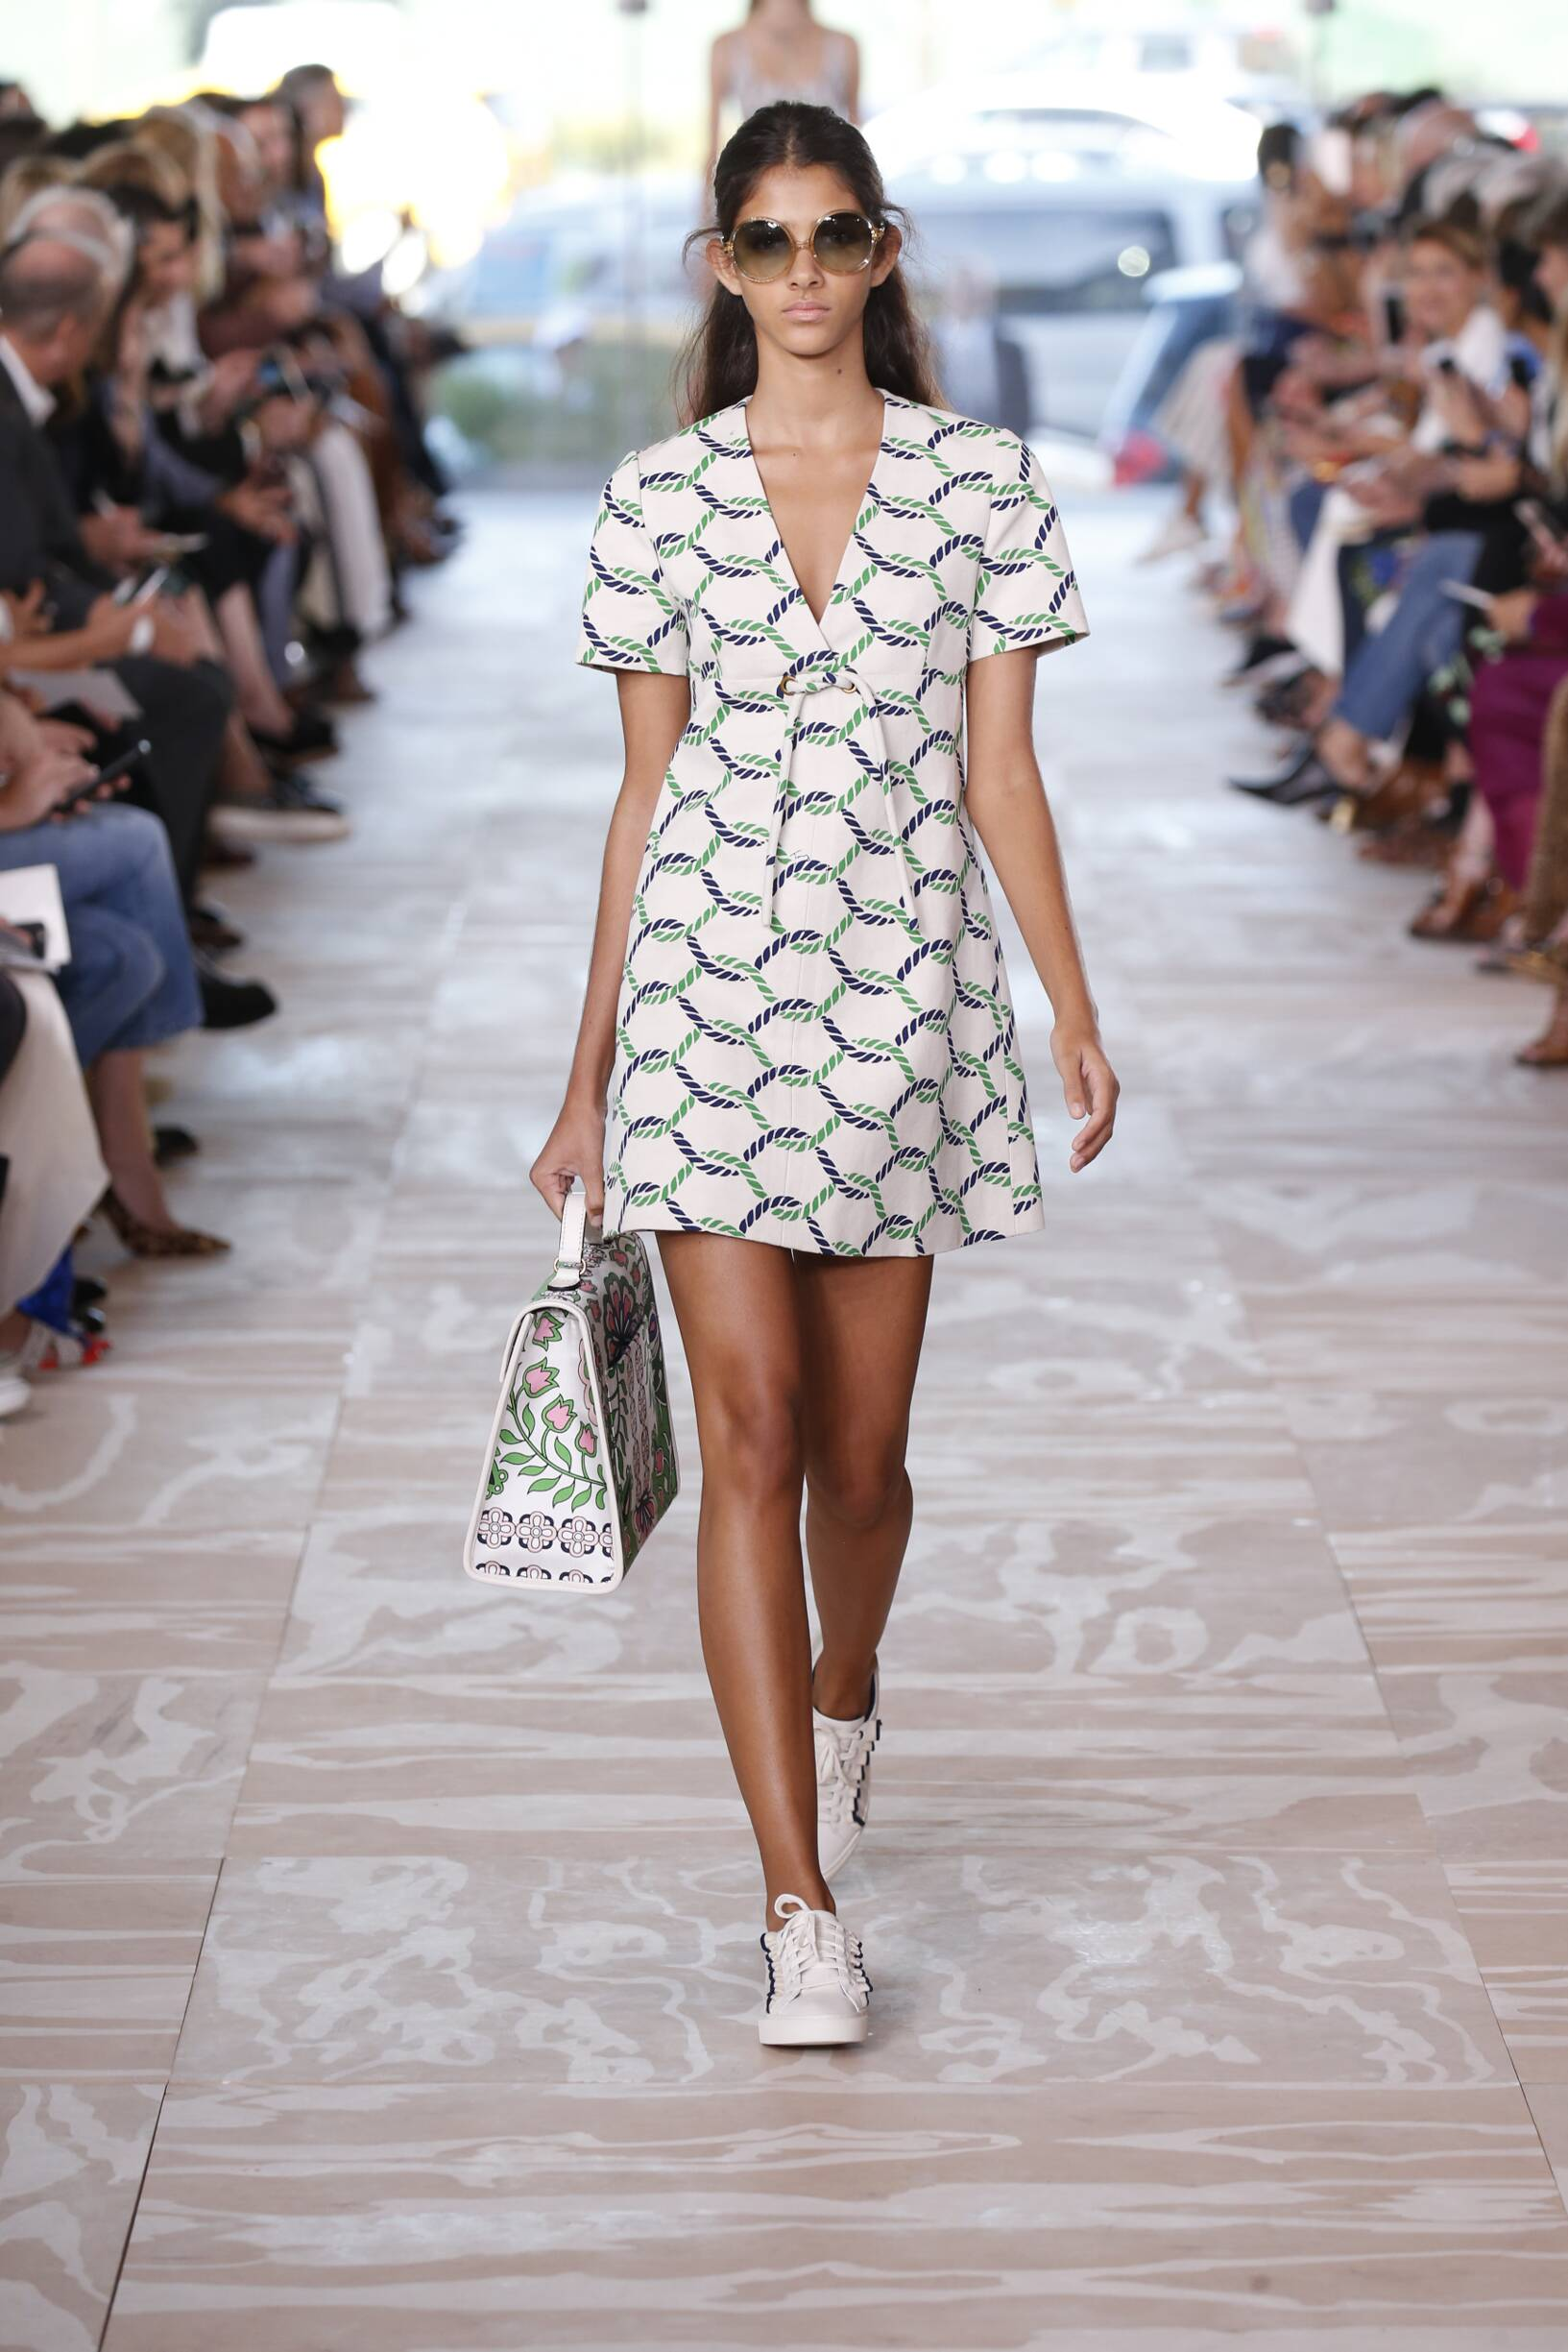 2017 Tory Burch Catwalk